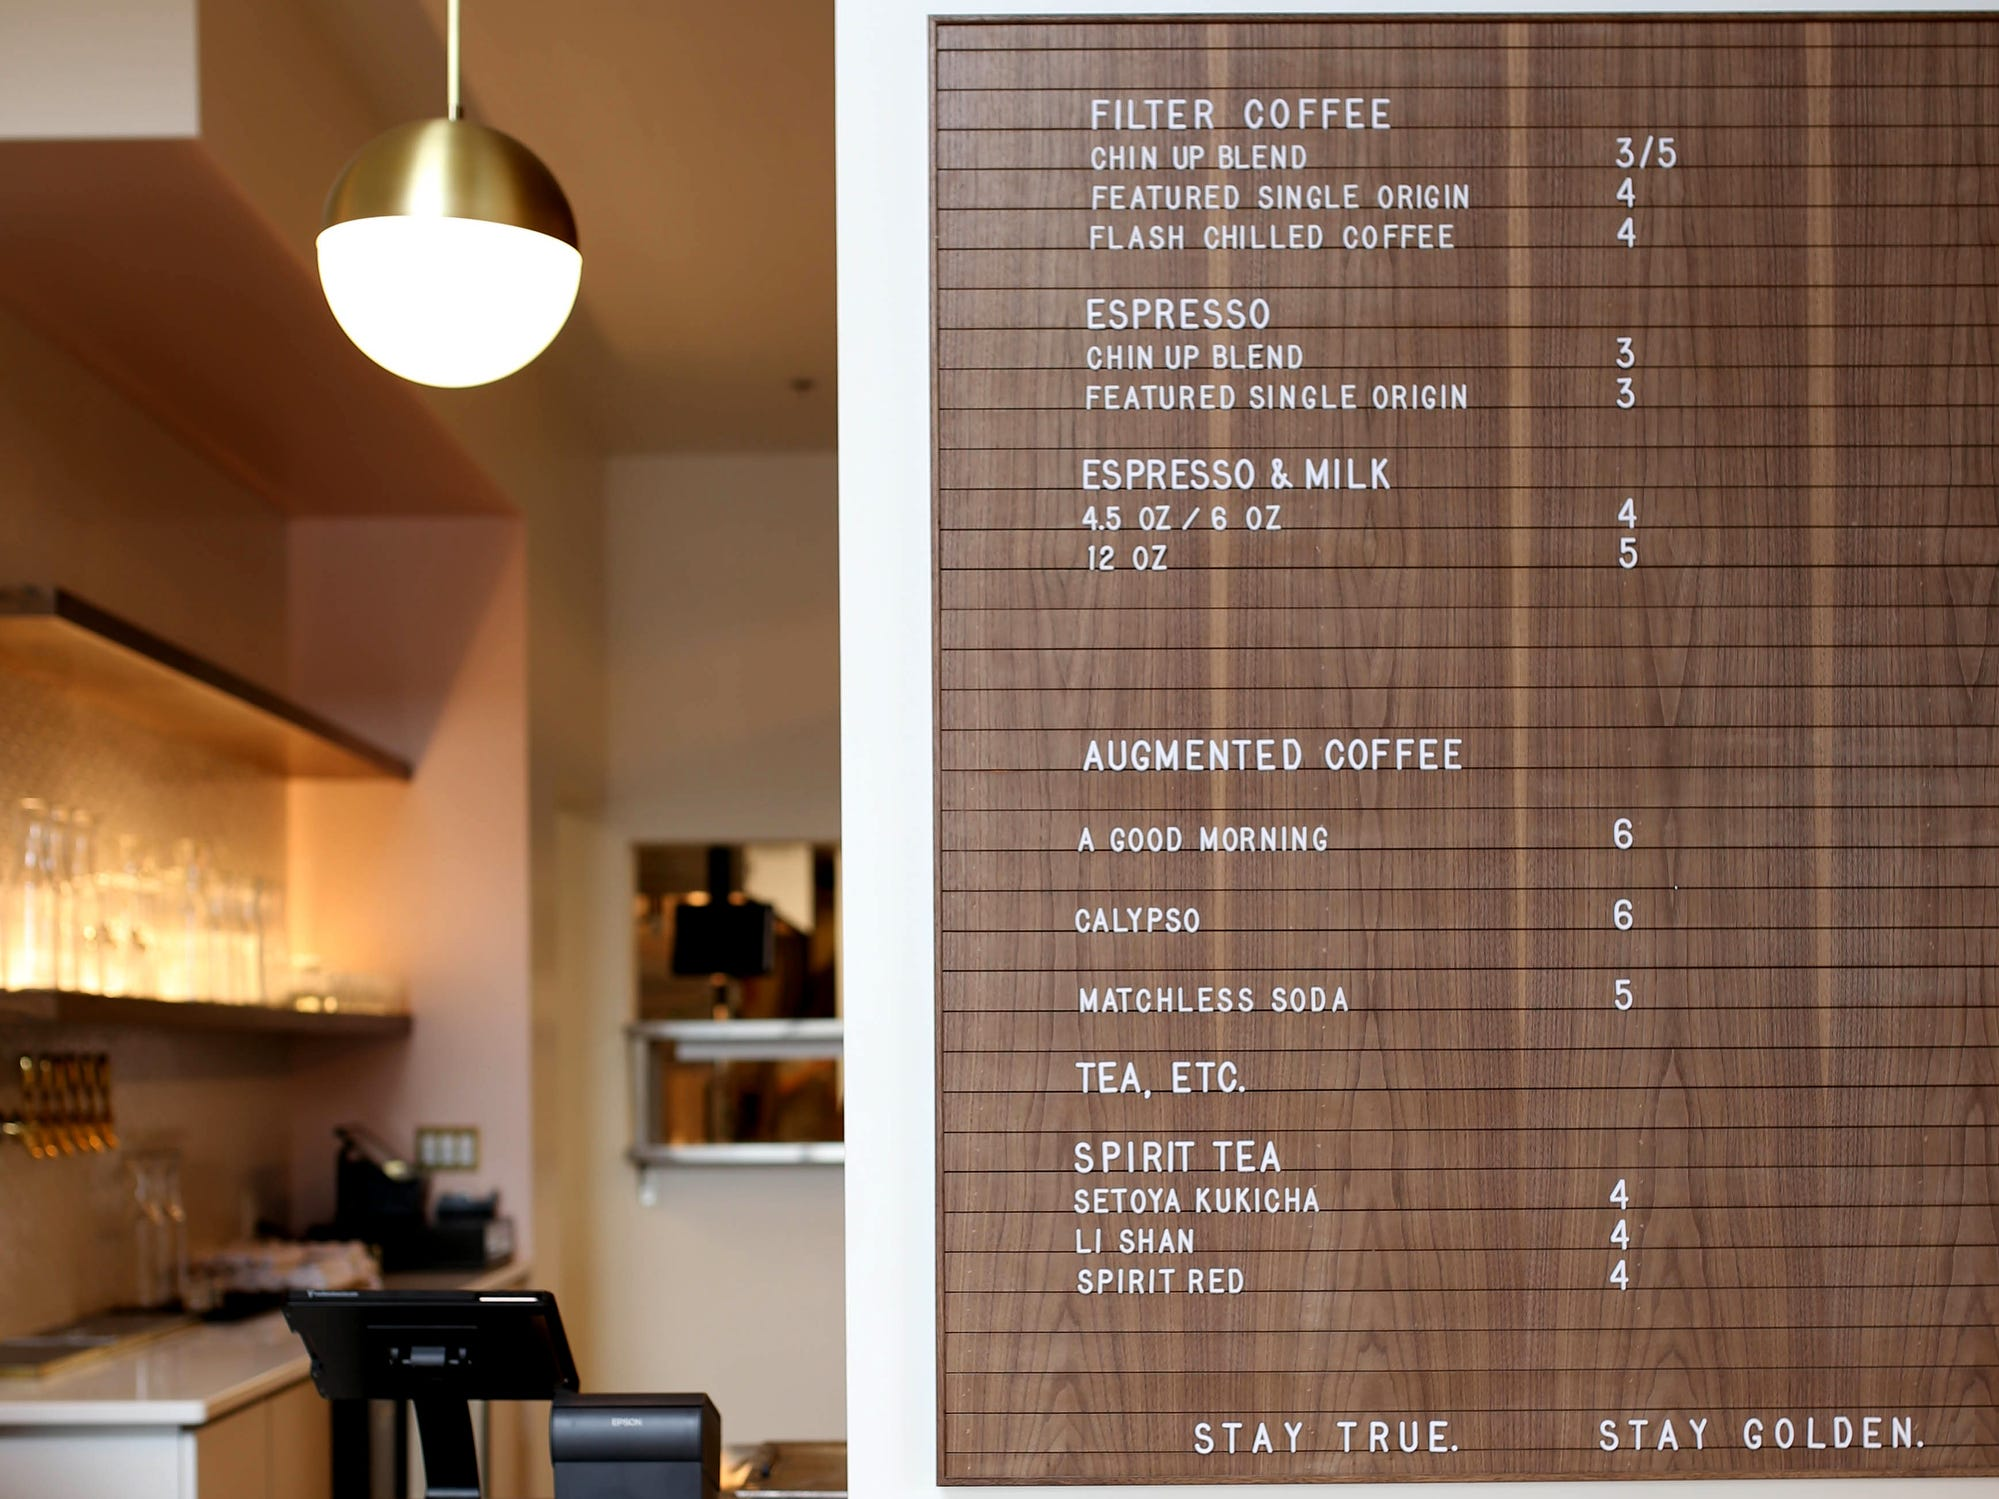 The drink menu at Stay Golden restaurant and roastery.